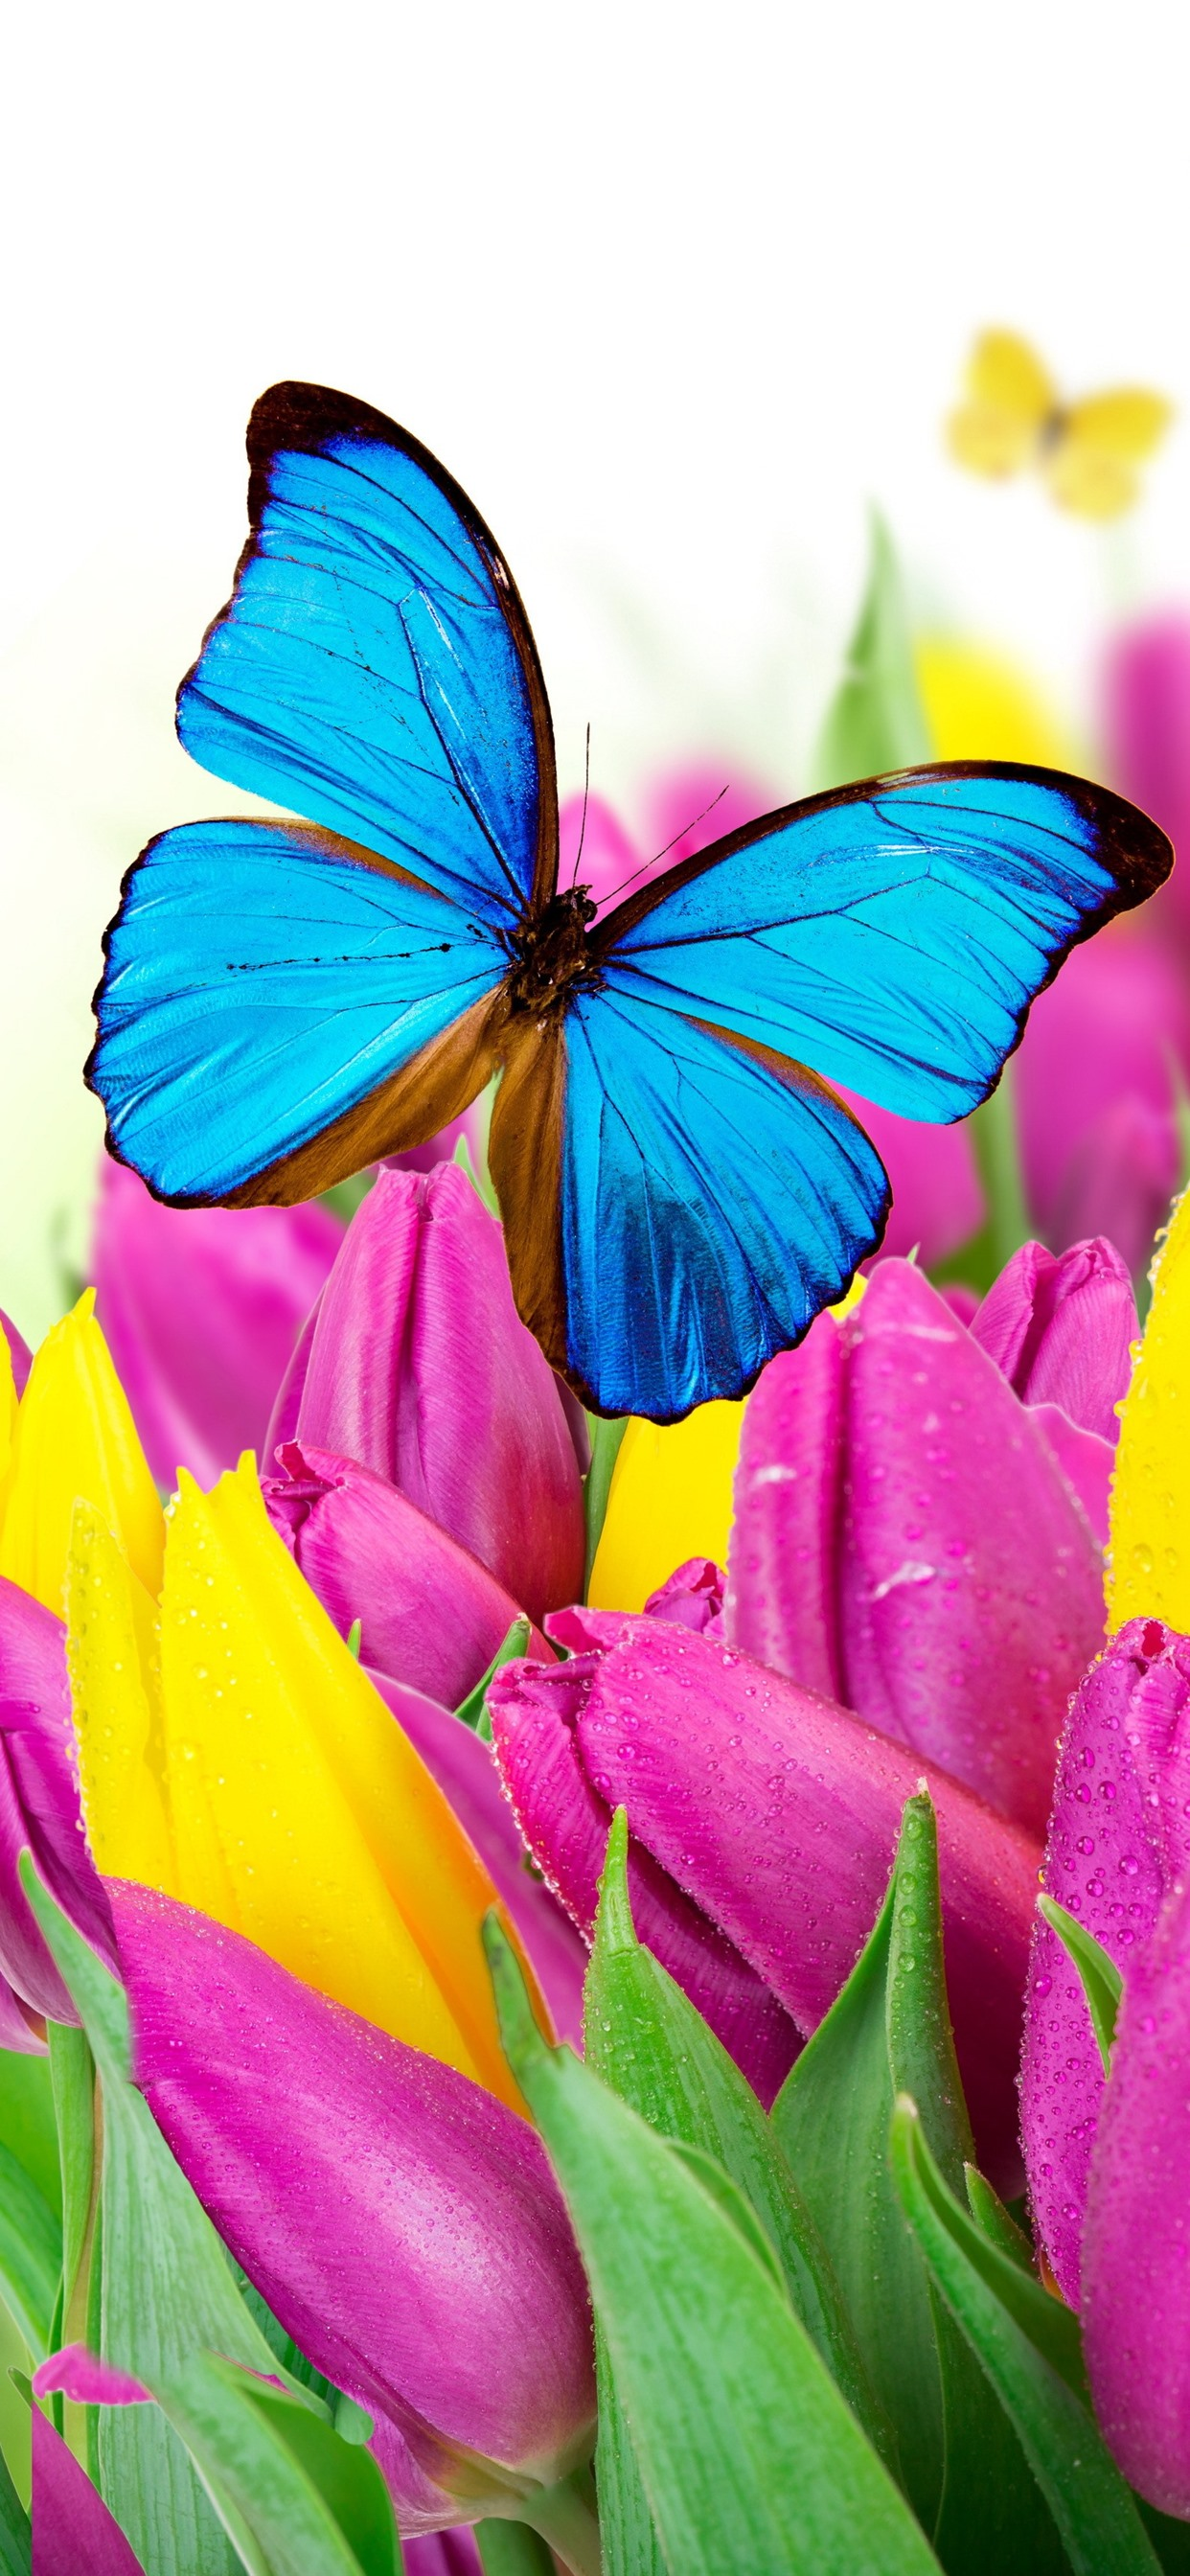 Many Tulips Pink And Yellow Flowers Butterfly 1242x2688 Iphone 11 Pro Xs Max Wallpaper Background Picture Image